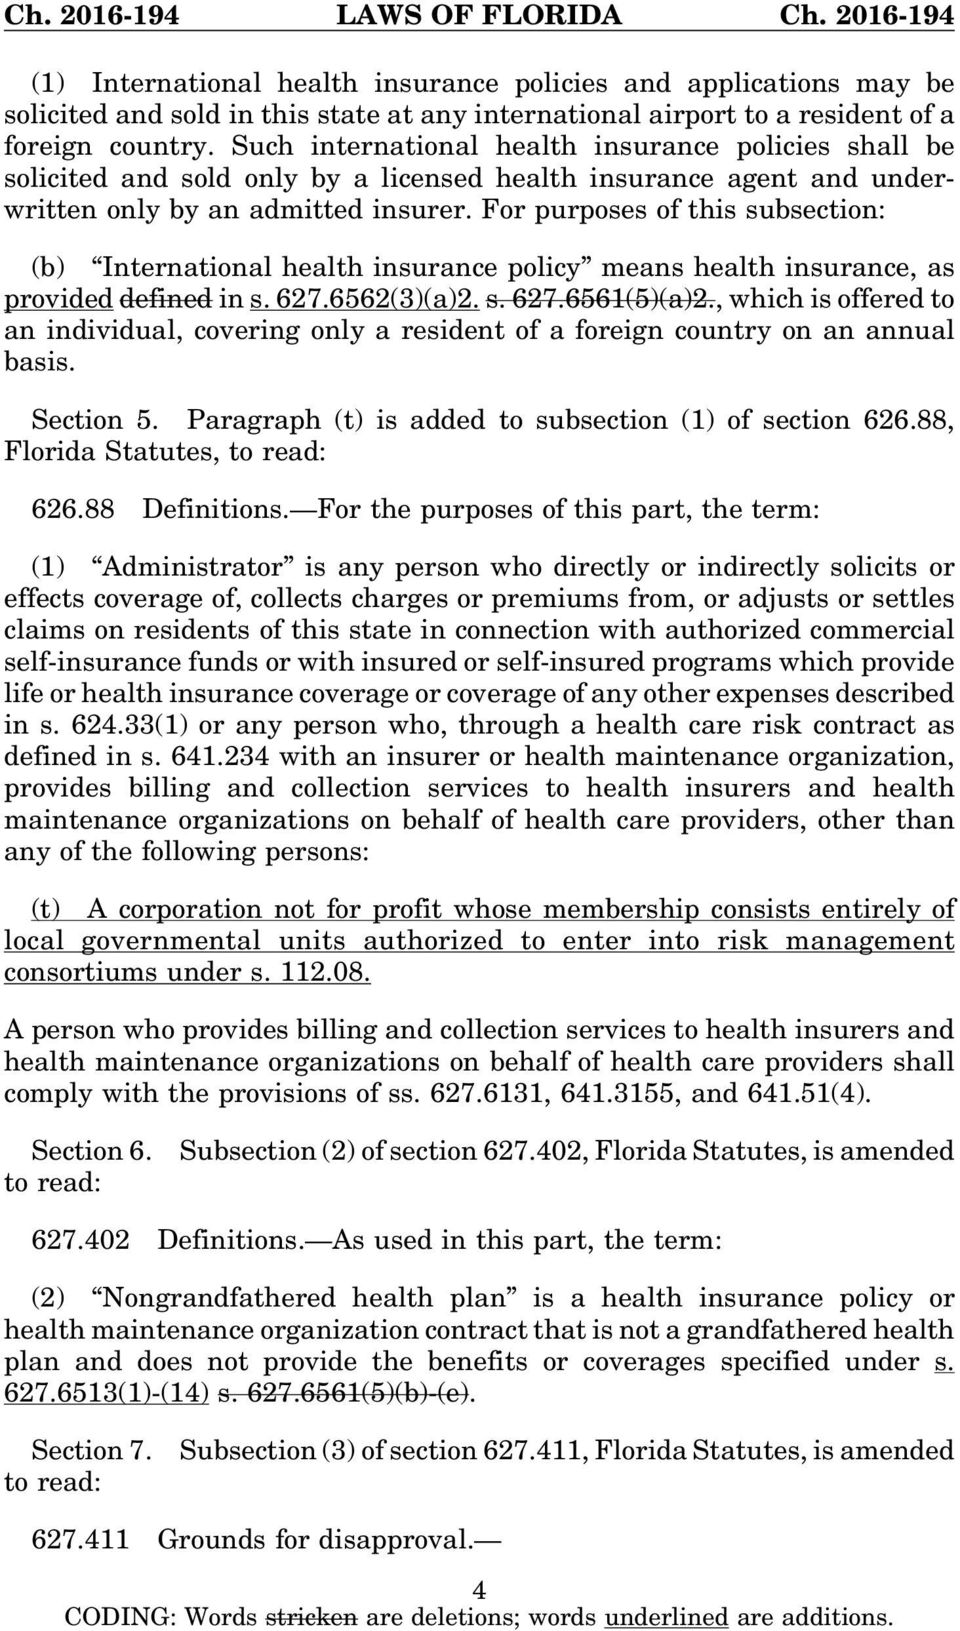 For purposes of this subsection: (b) International health insurance policy means health insurance, as provided defined in s. 627.6562(3)(a)2. s. 627.6561(5)(a)2.